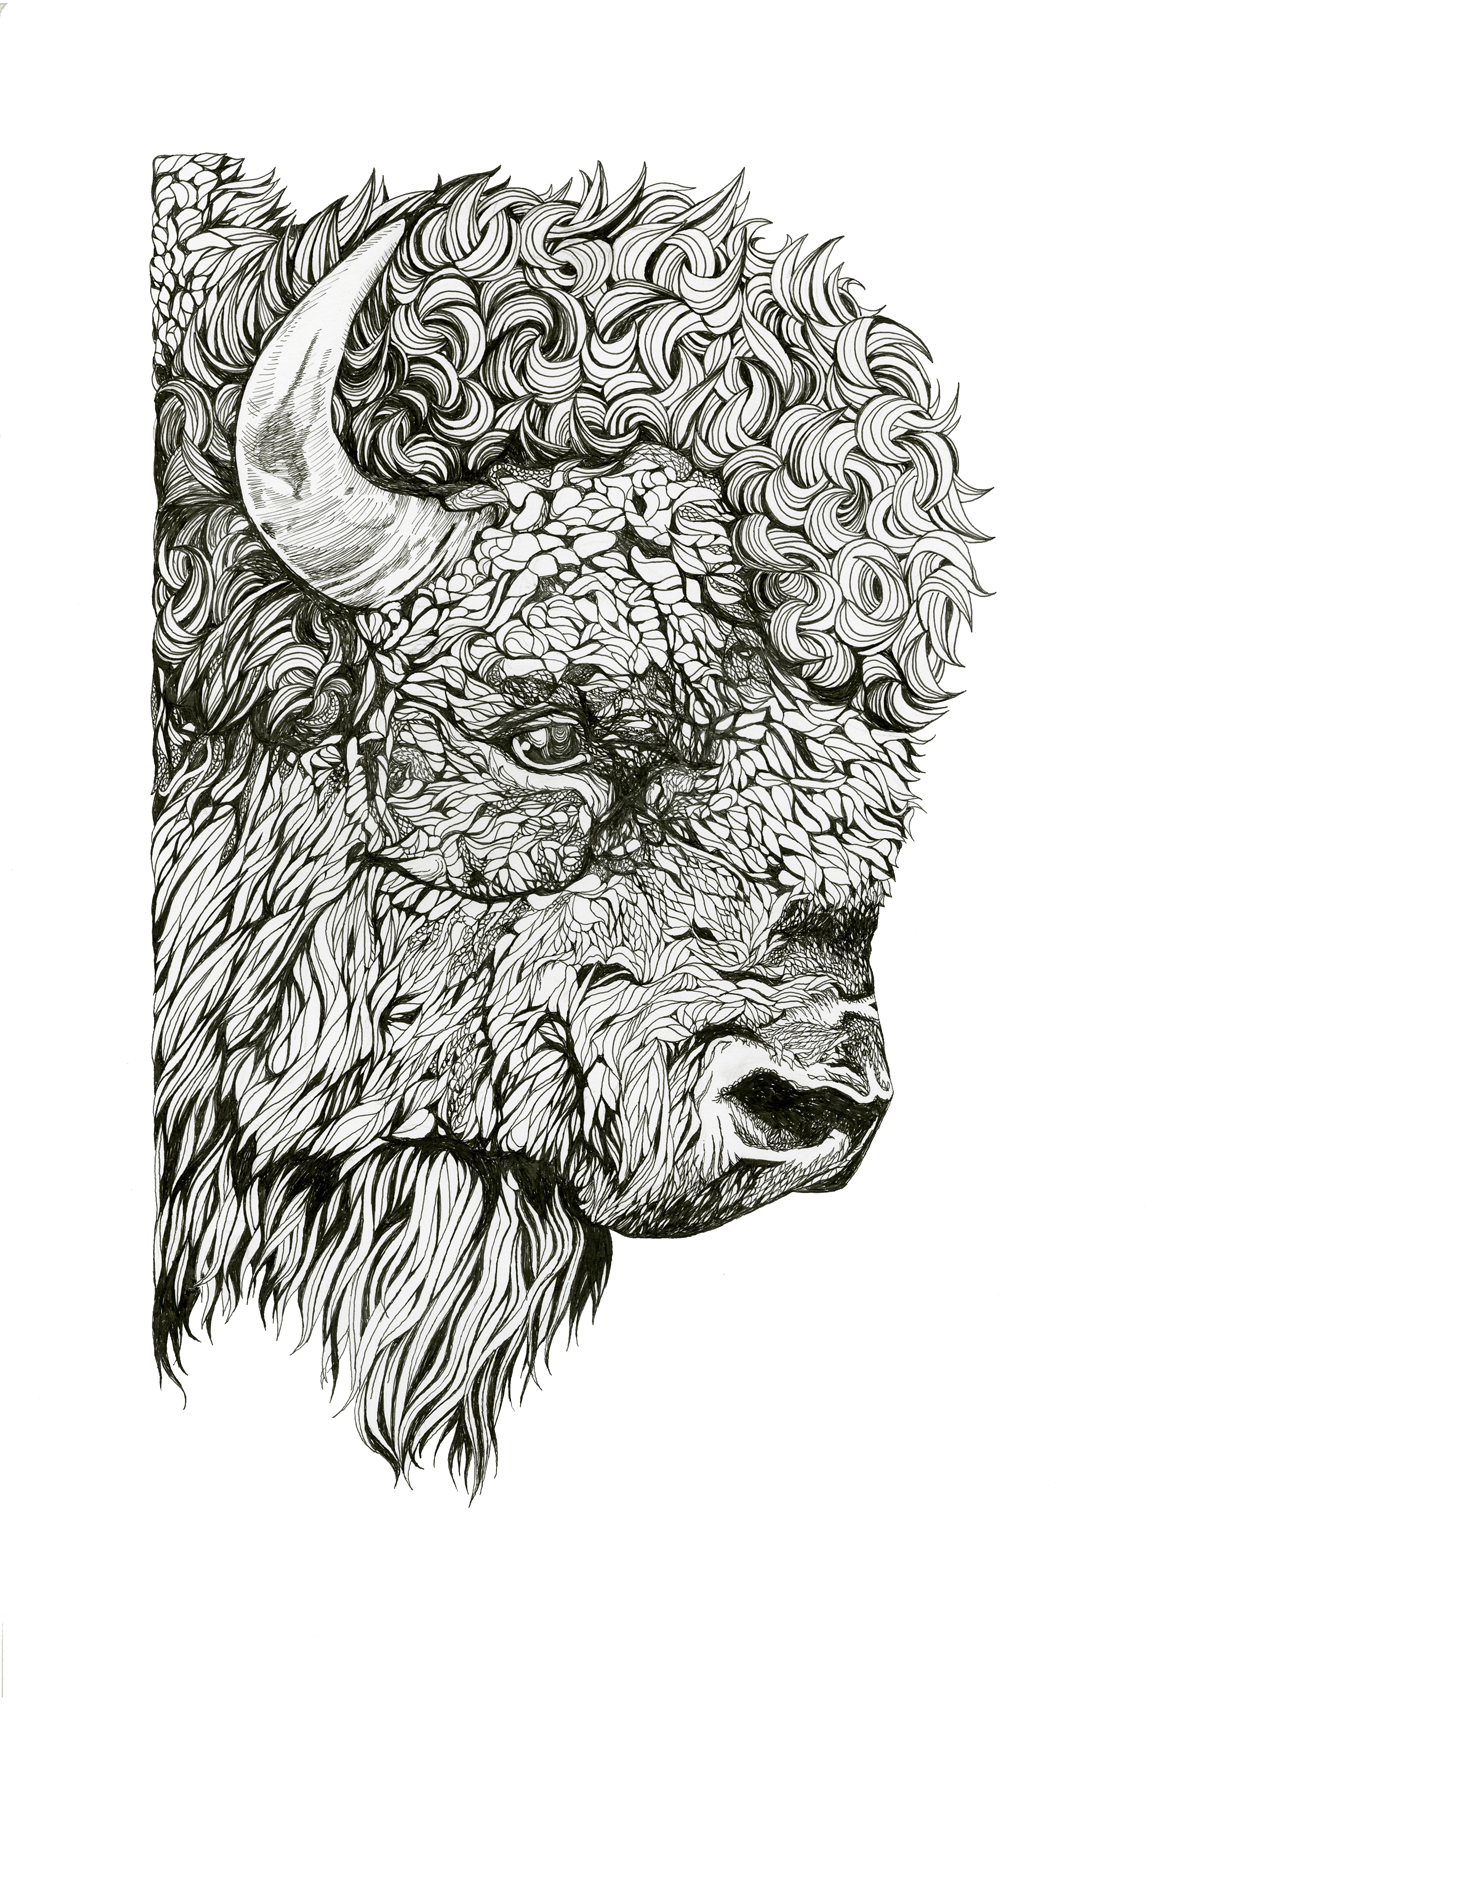 Bison Bison Bison - 19 X 14.5 infelt-tipped pen on bristol paperprints available on request